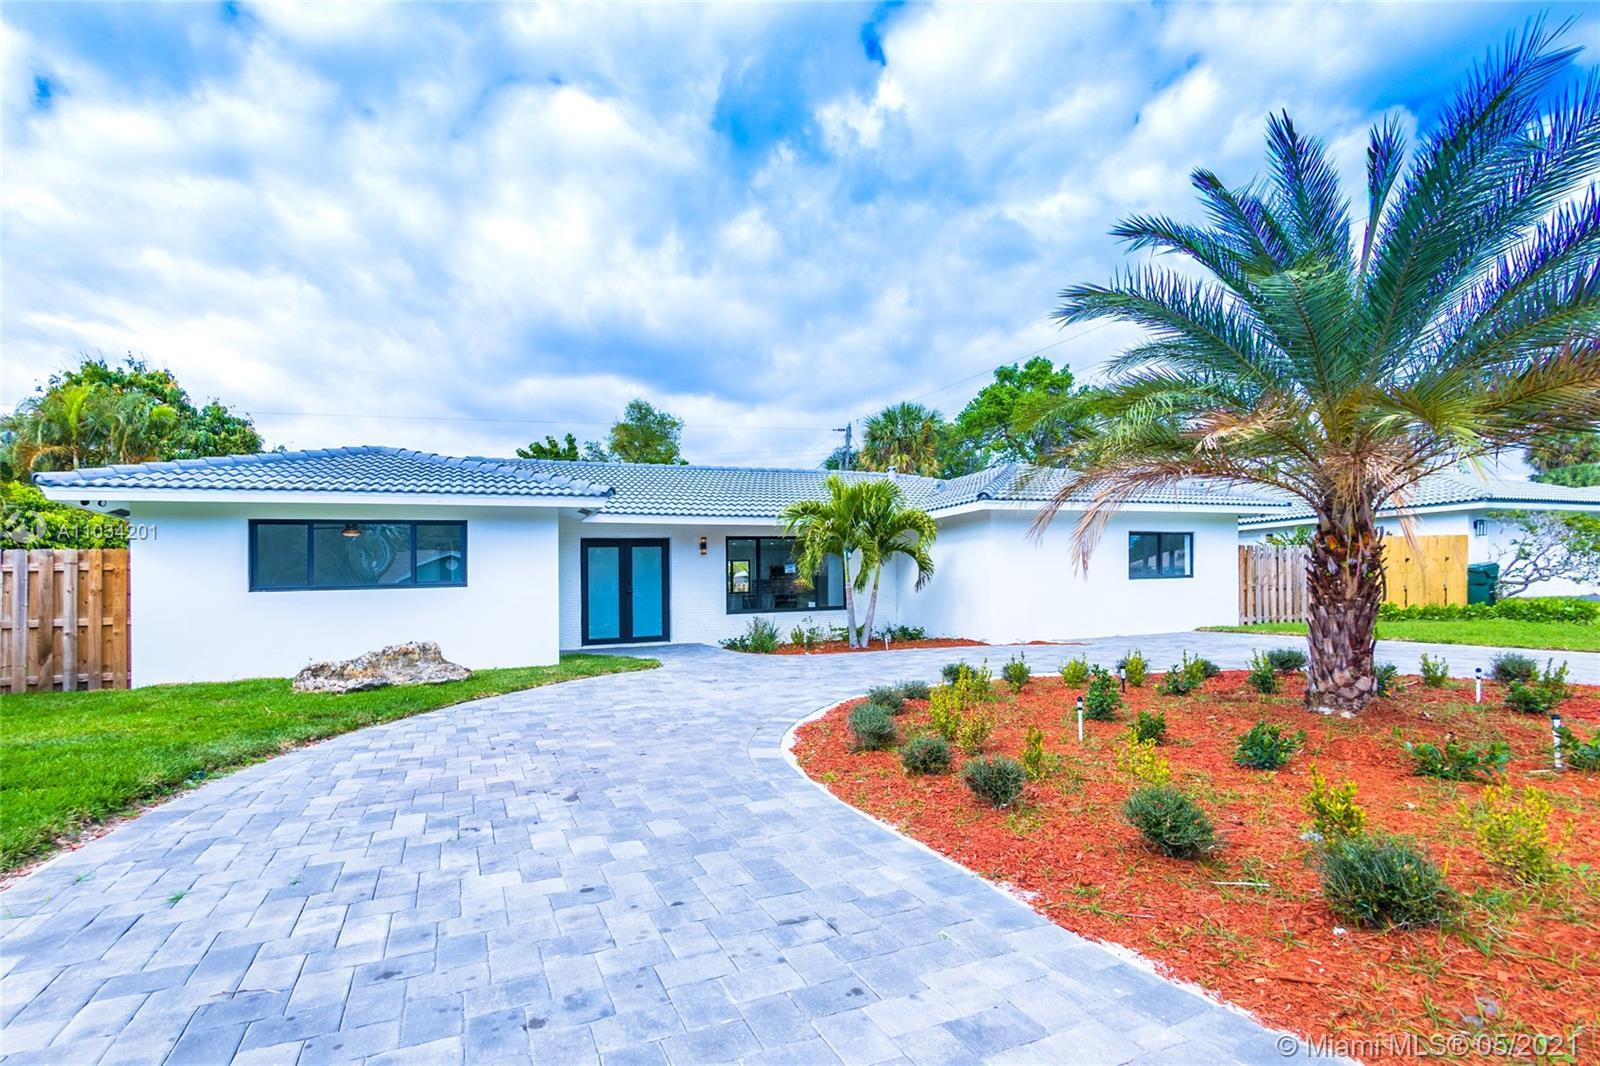 Come and see this tastefully remodeled home with large open floor plan, in a great neighborhood on a